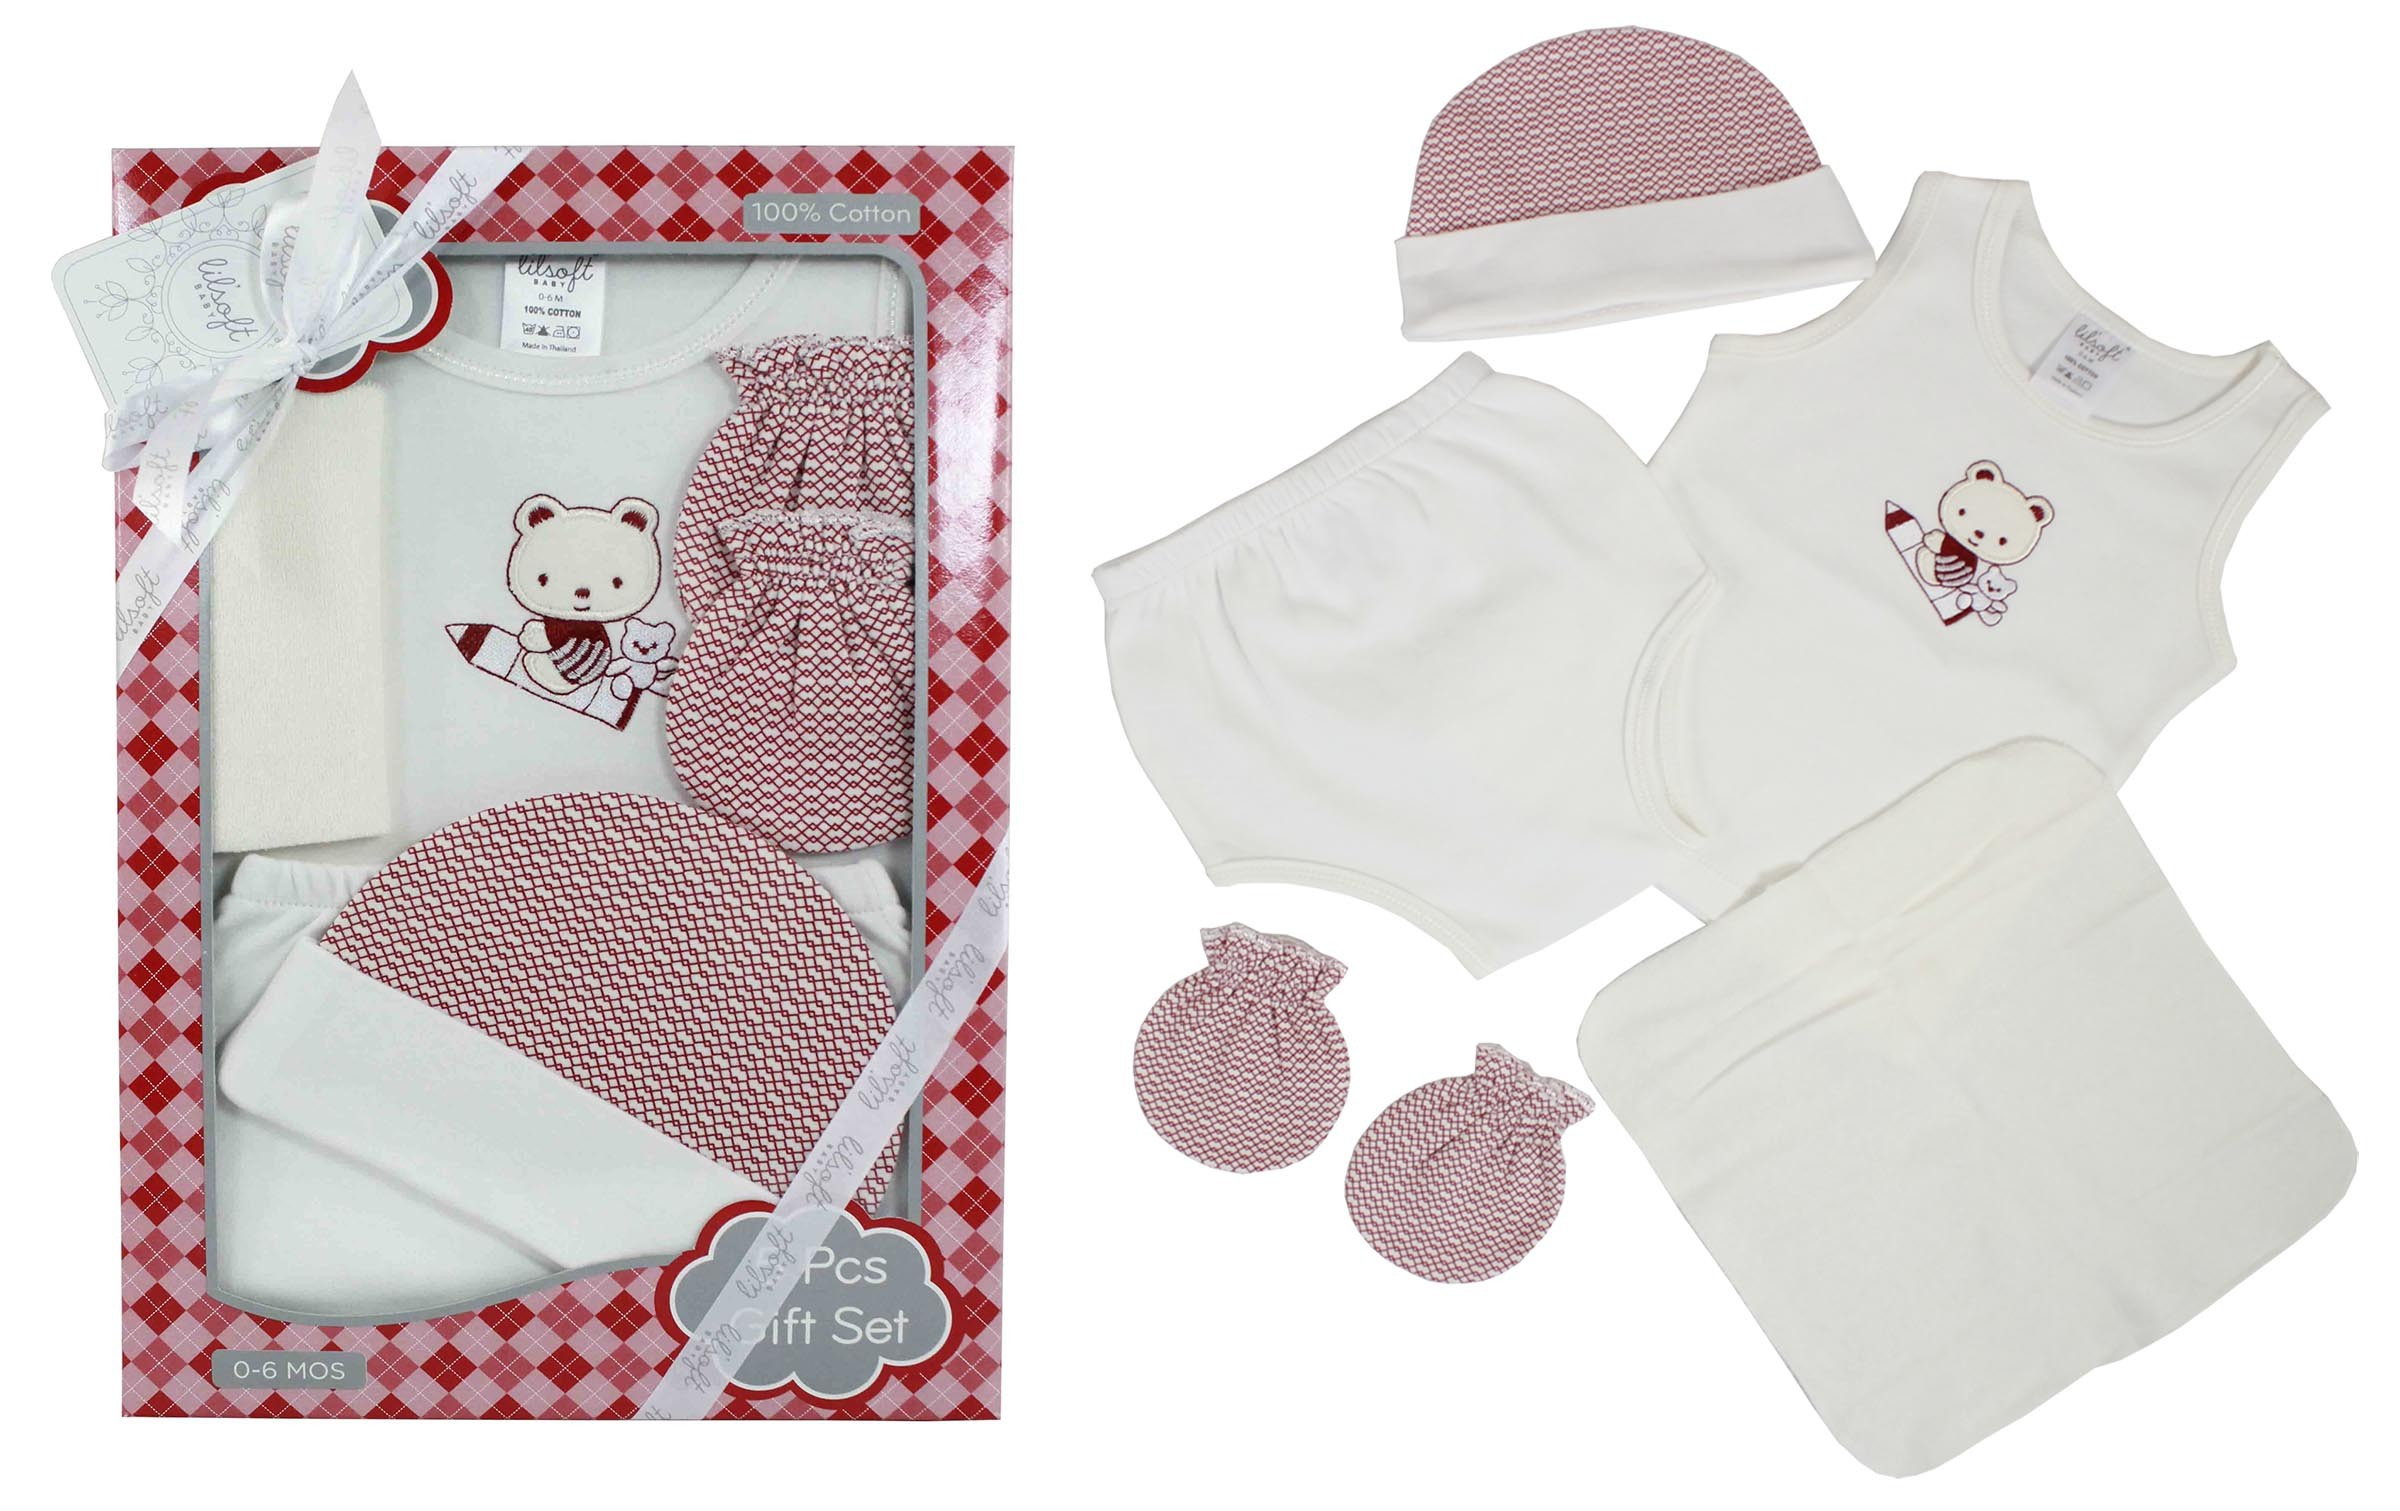 Baby Gift Set Totoro : Pcs baby gift set for sets